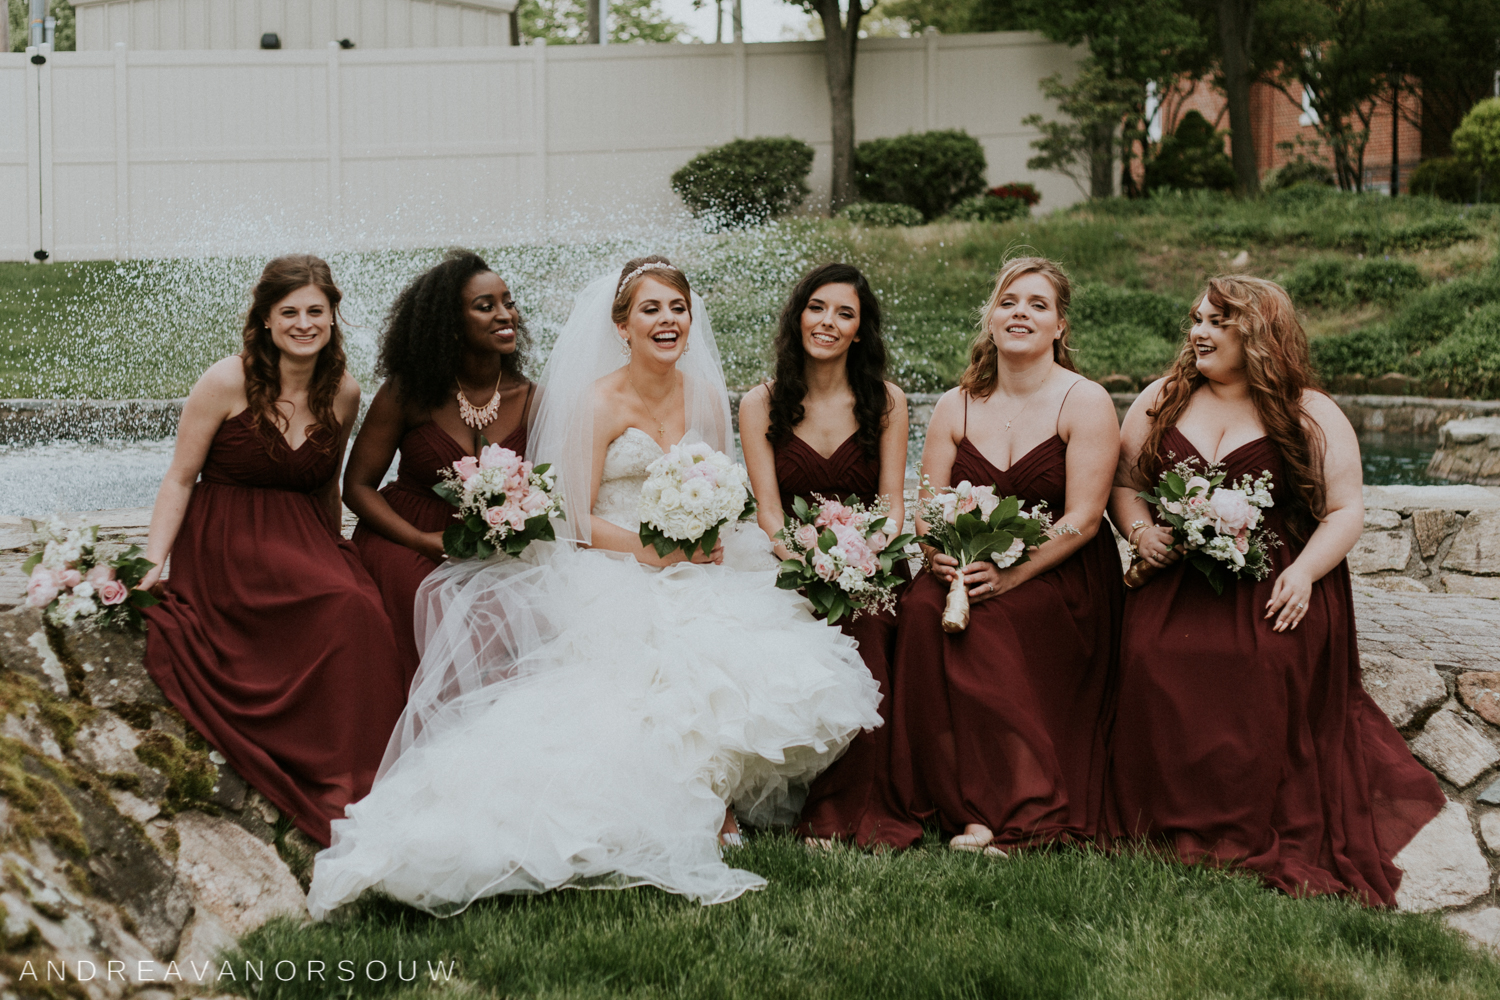 bridesmaids_bride_laughing_outdoors_red_dresses_bridal_party_ct_wedding_photographer.jpg